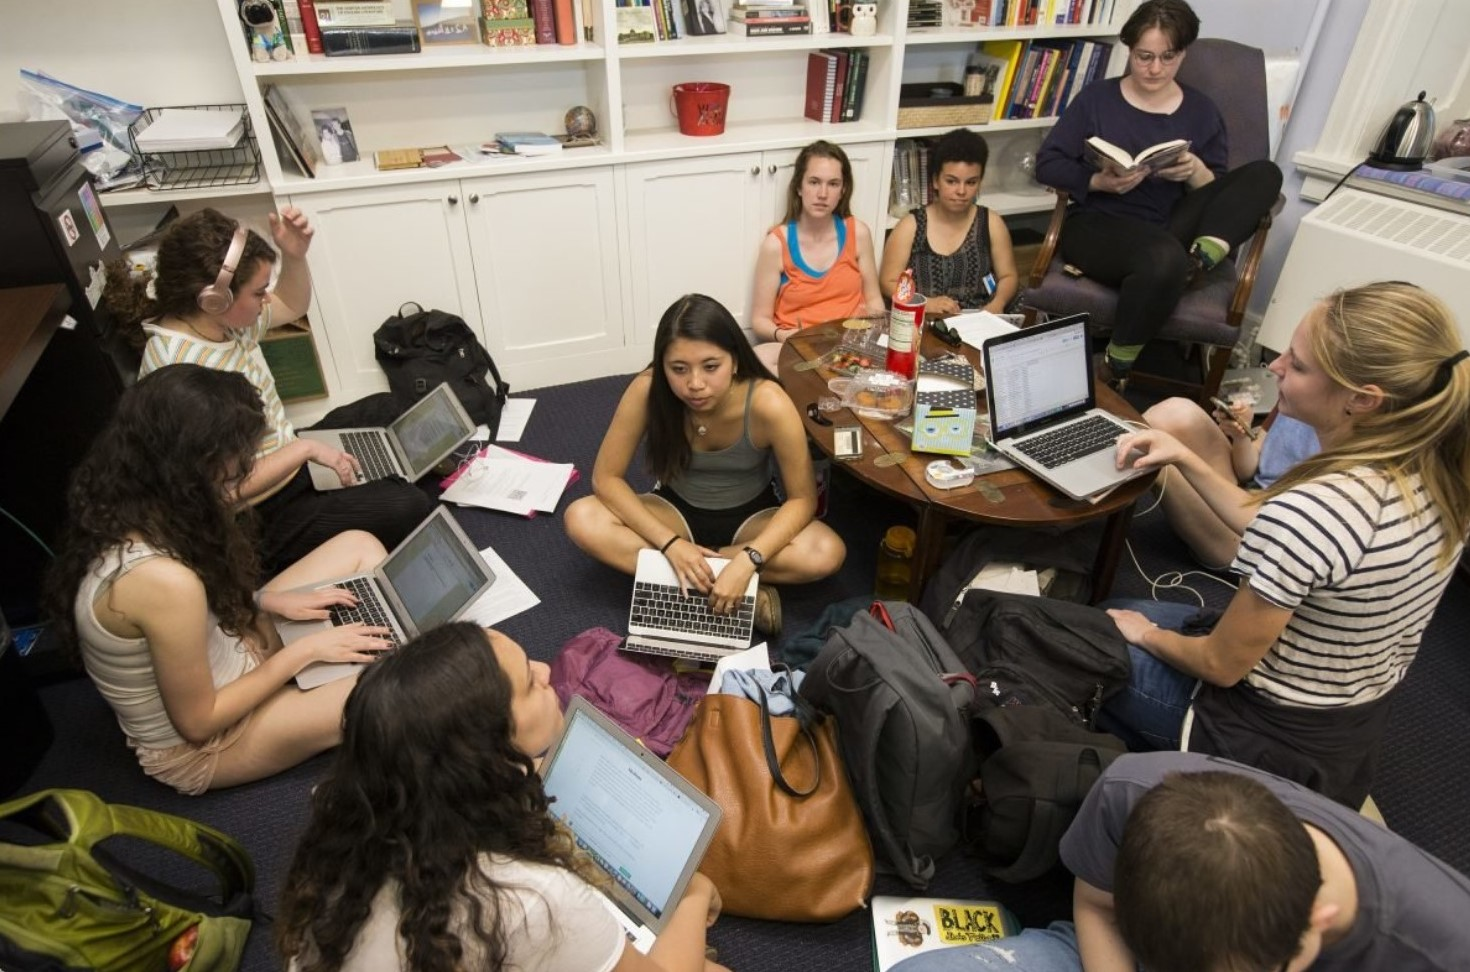 Swarthmore College Students Who Organized Sit-In Receive Audience with Administration